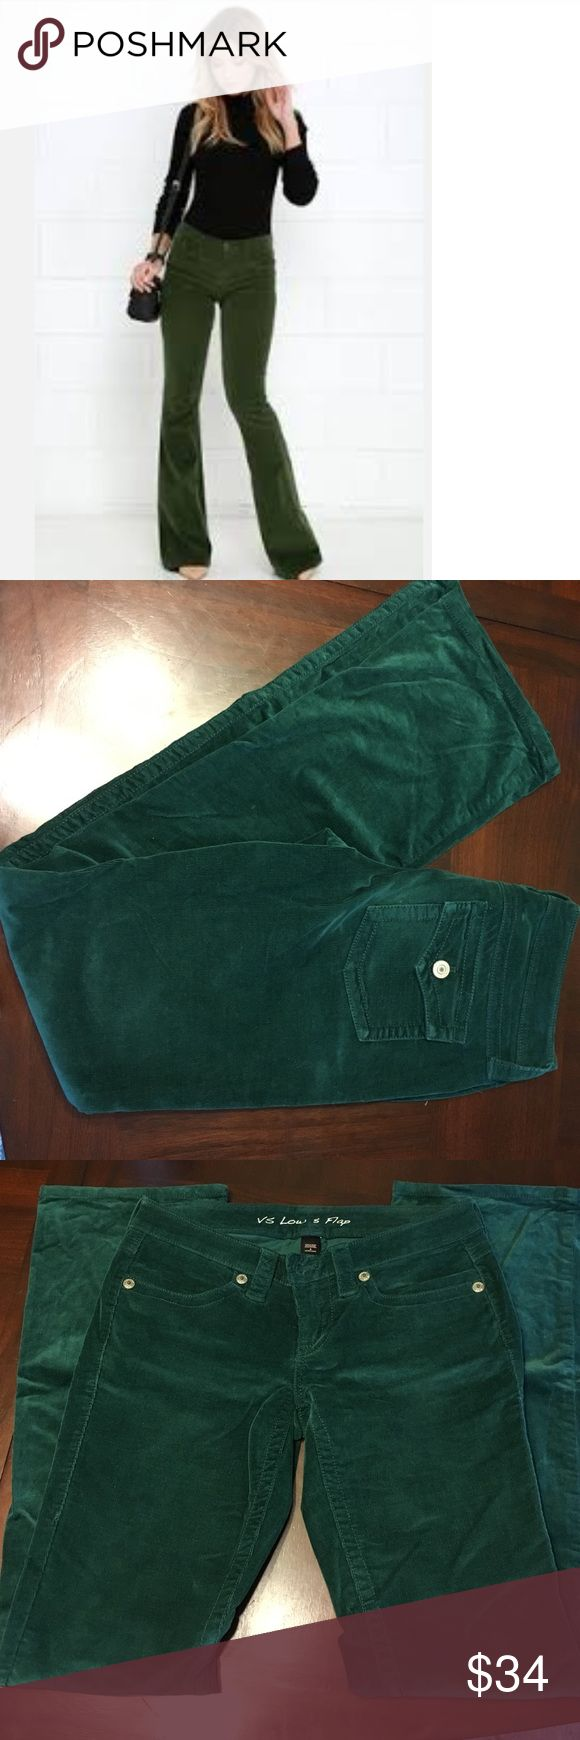 "Victoria's Secret Hunter Green Corduroy Pants LONG VS Low 5 Flap. Gorgeous dark green or emerald Corduroy pants. Size 4 long 32"" inseam. Great condition stretchy and comfy!!  I have these in Navy too!!!  🍍 Have questions? Please ask! 💚 I love offers! 🍍 I won't be offended when you lowball only if you won't be offended when I counter.  💚 Please use the offer button or my 'Closet Rules' thread to negotiate bundles. 🍍  Refer to my handy chart for guidance on offers. 💚 Bundle & save…"